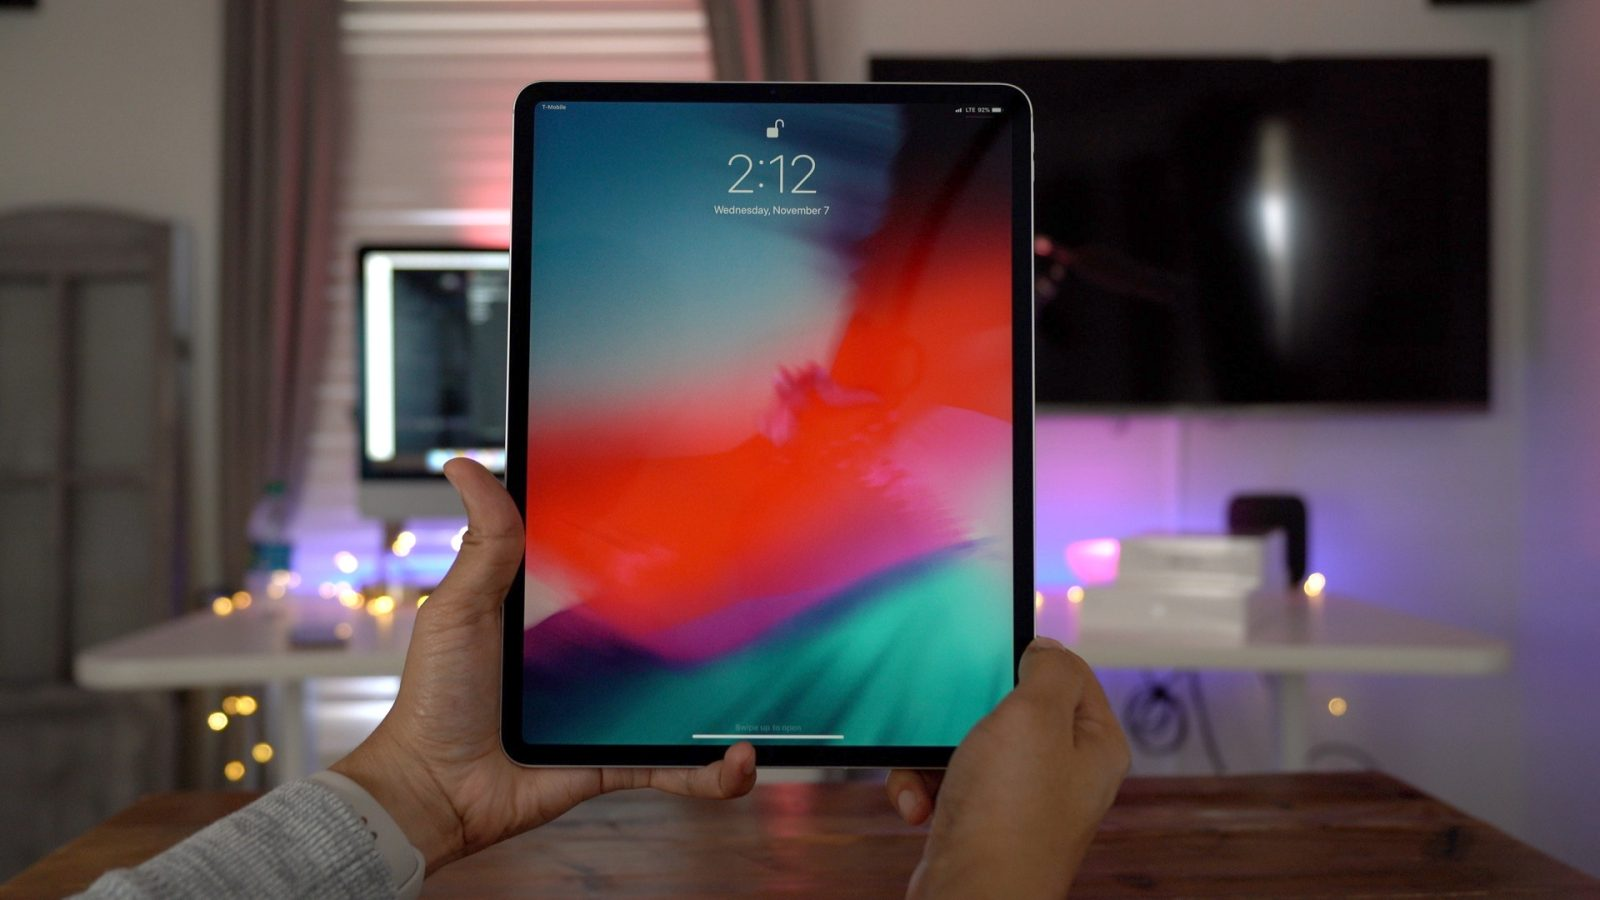 iPad Pro Face ID first impressions compared to iPhone XS - 9to5Mac